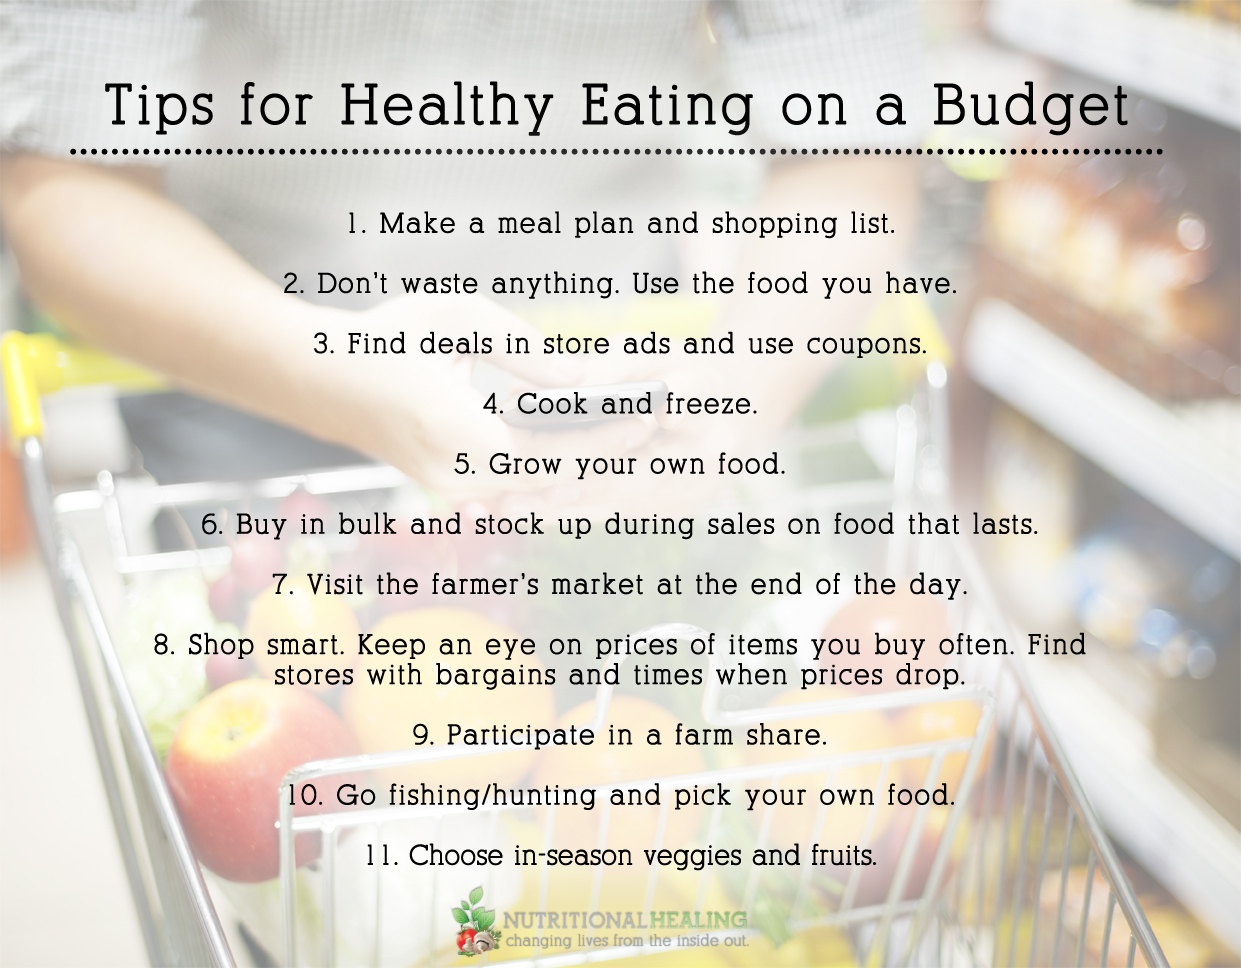 Tips For Healthy Eating On A Budget Nutritional Healing regarding Eating Healthy On A Budget